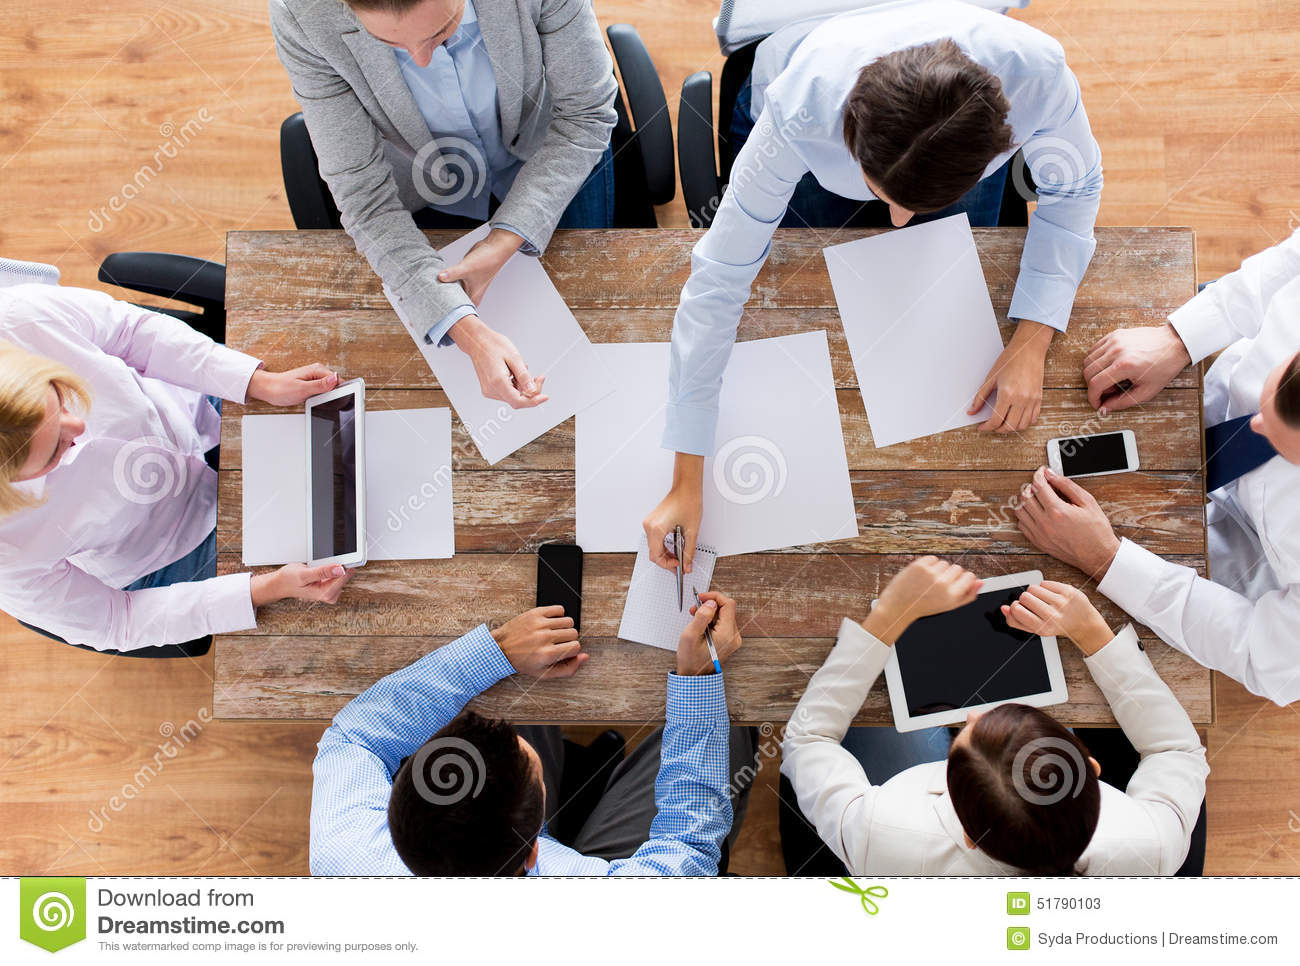 crew essay picture team team work work Army crew team case study - team building essay 2525 defects • identify the source • provide pictures, diagrams and project team team work essay.